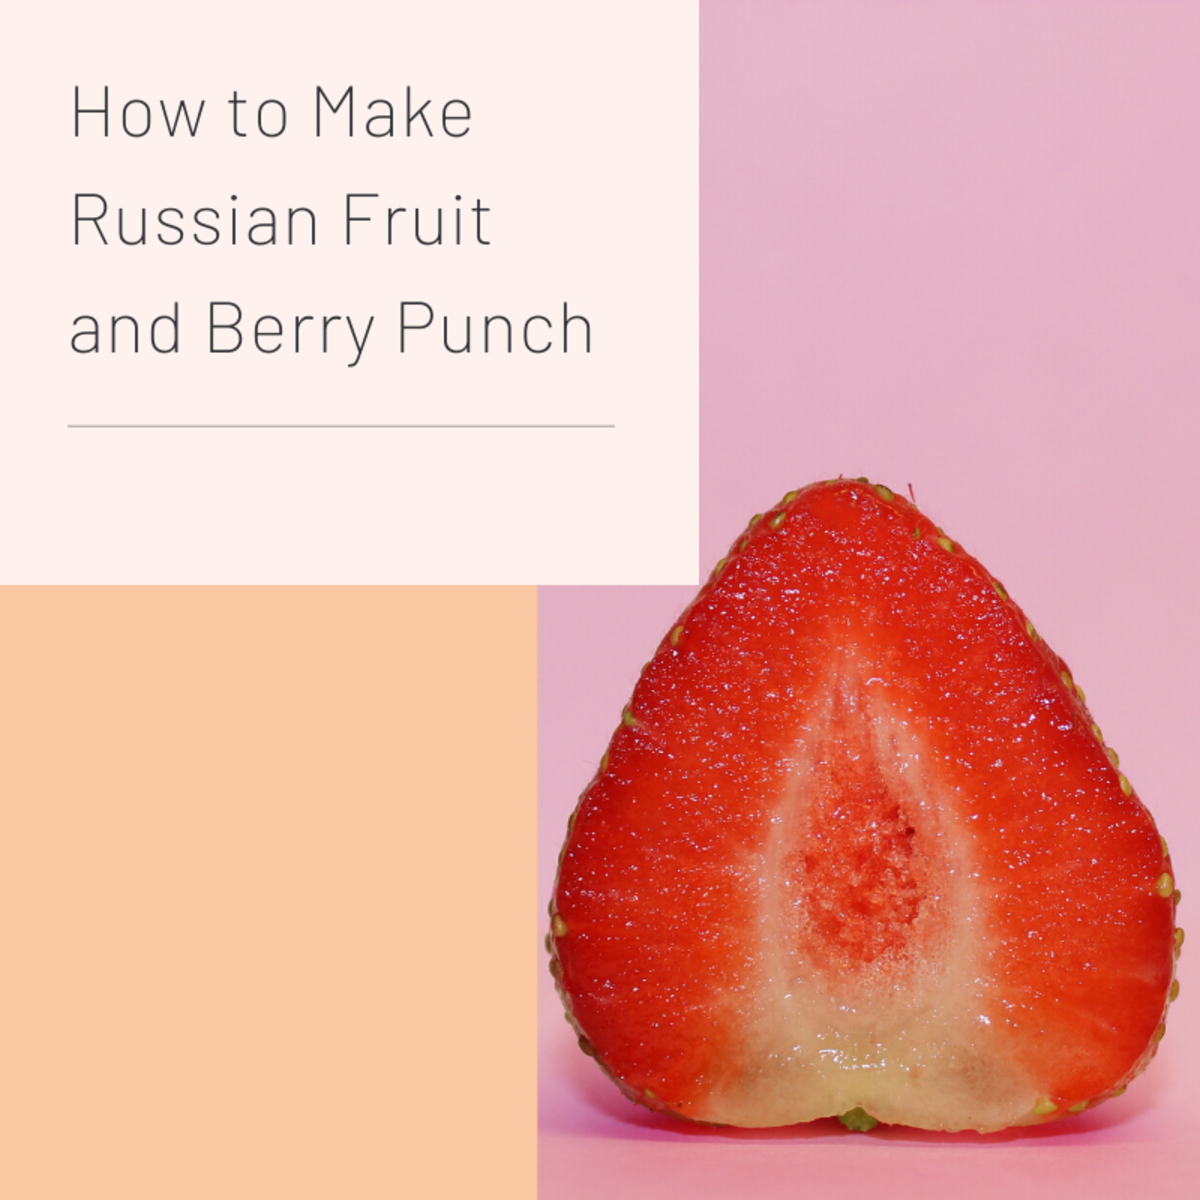 Making Russian fruit punch is a great way to salvage bruised fruit.